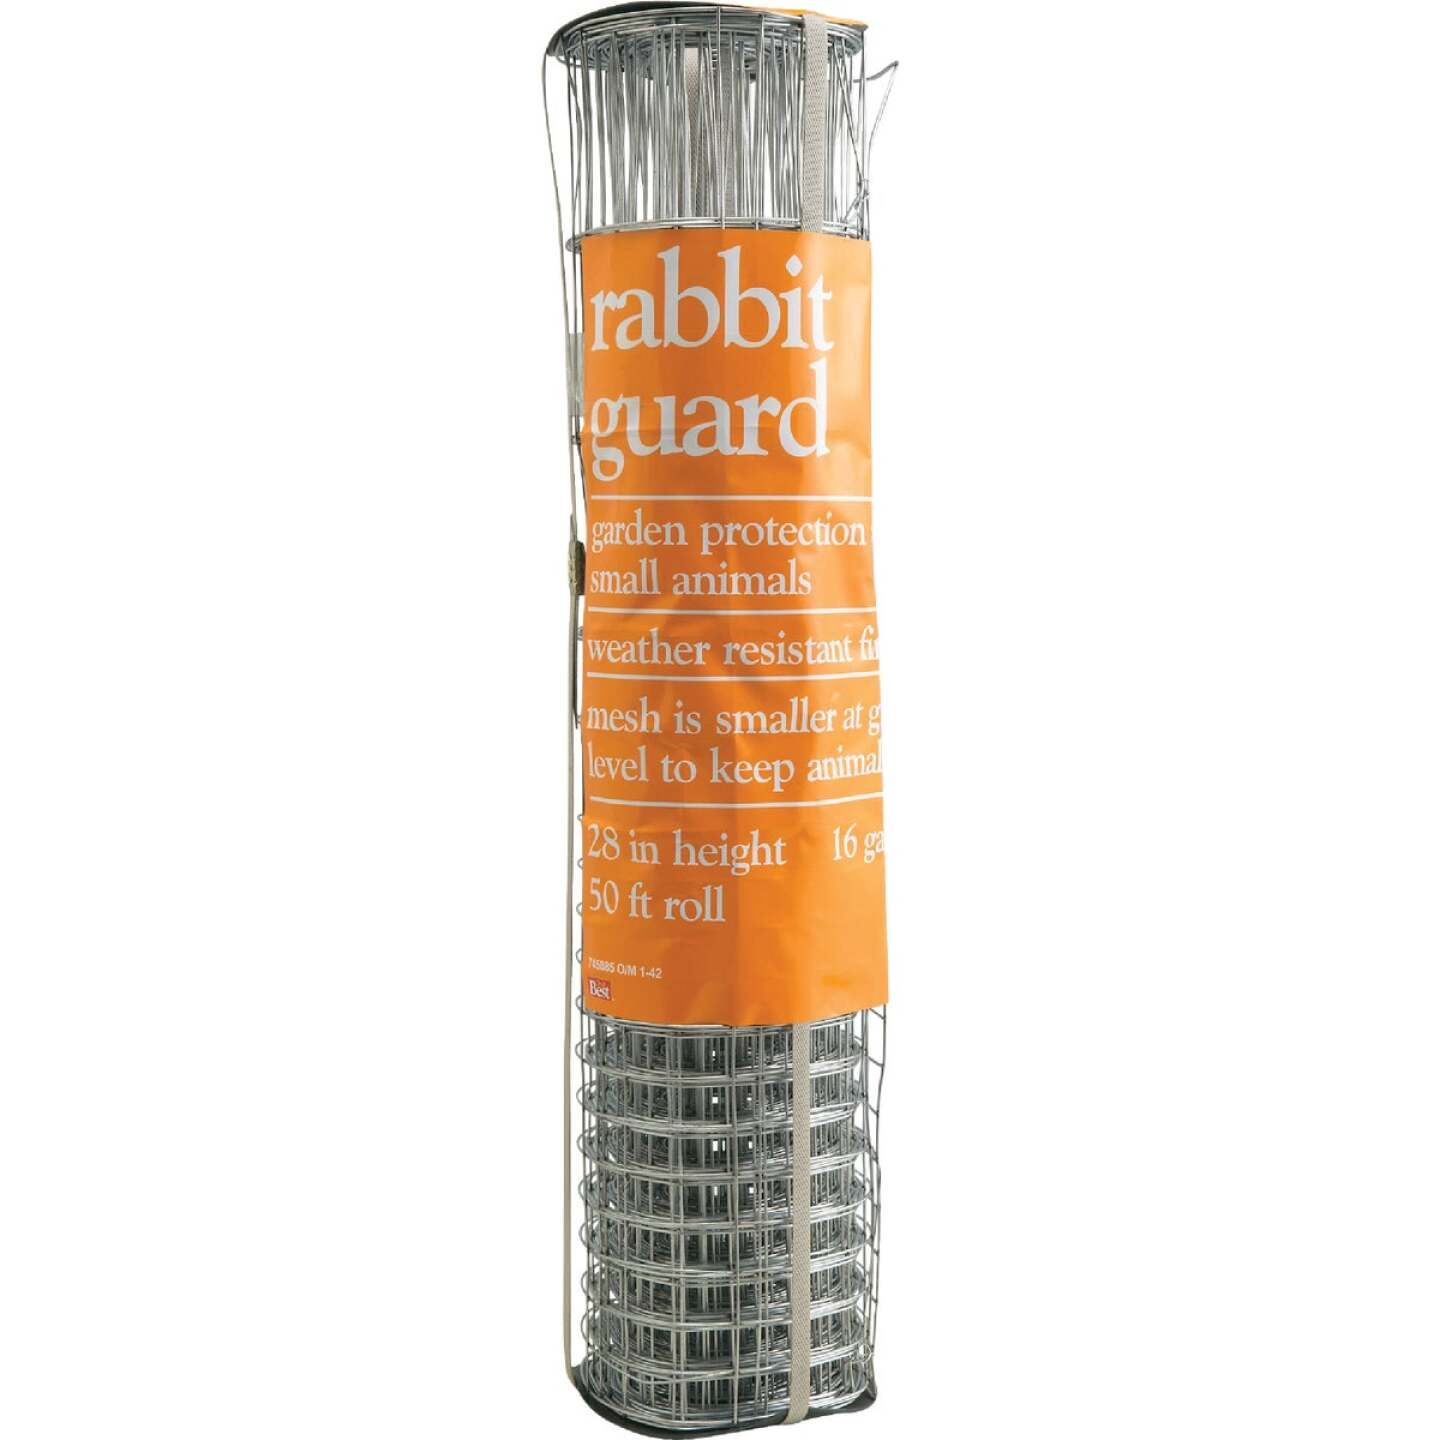 Rabbit Guard 28 In. H. x 50 Ft. L. Galvanized Wire Garden Fence, Silver Image 2